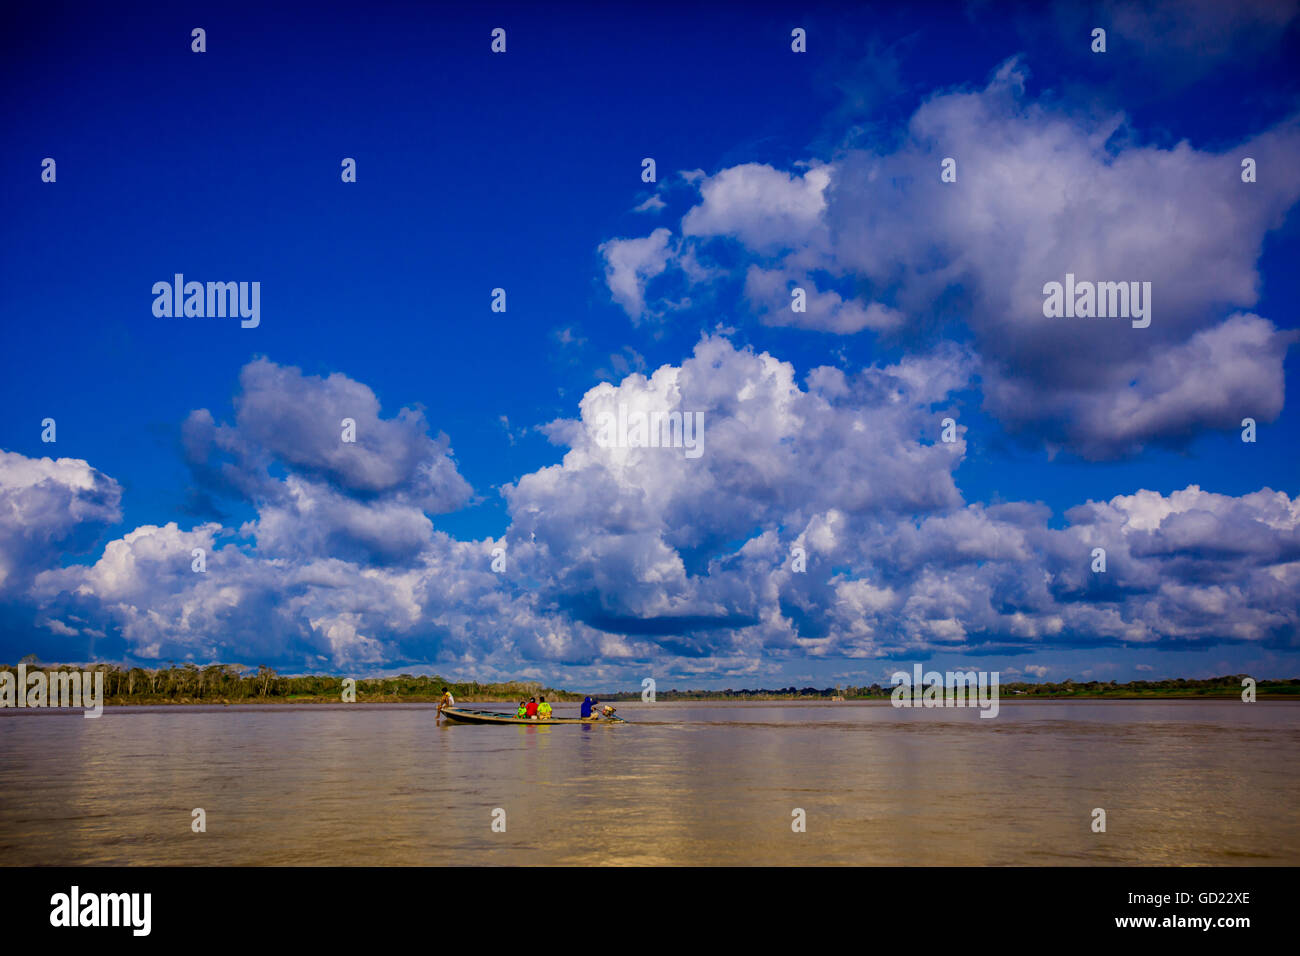 Family on a canoe, Amazon River, Iquitos, Peru, South America - Stock Image